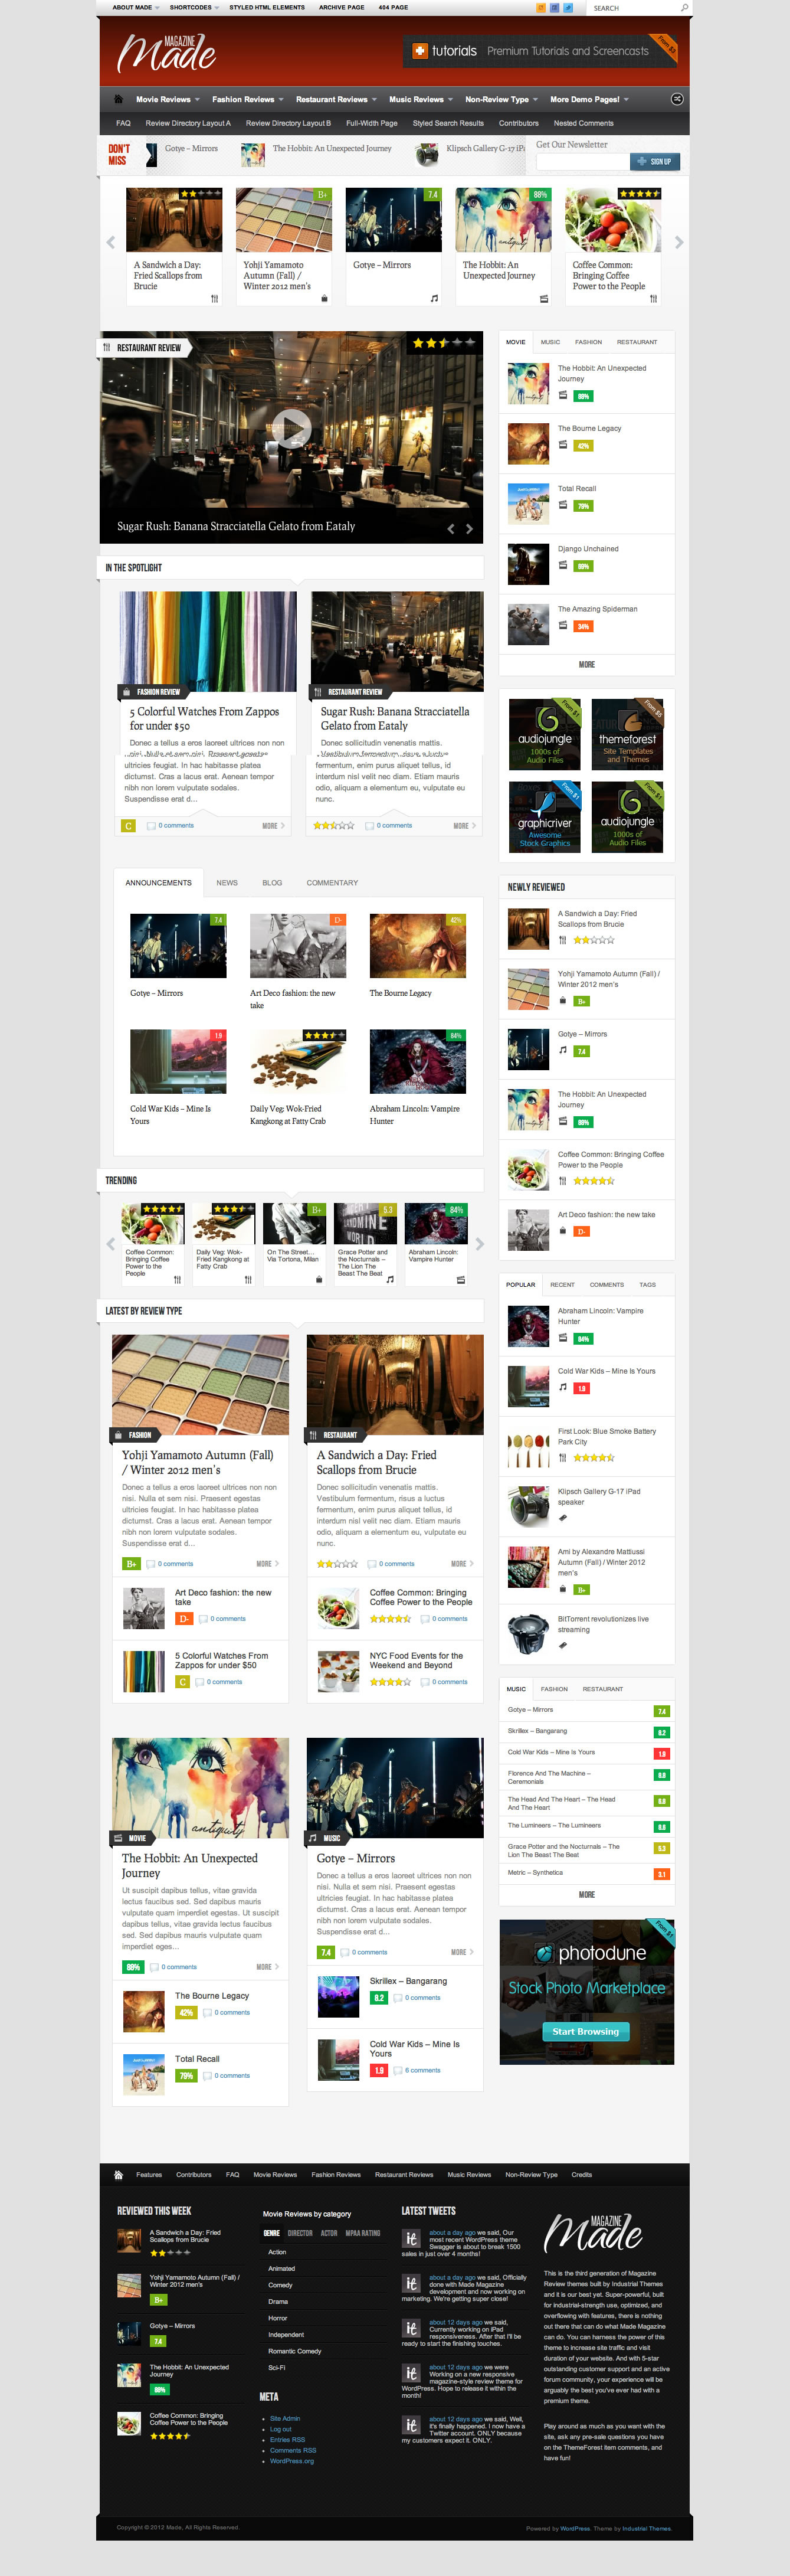 Made - Responsive Review/Magazine Theme